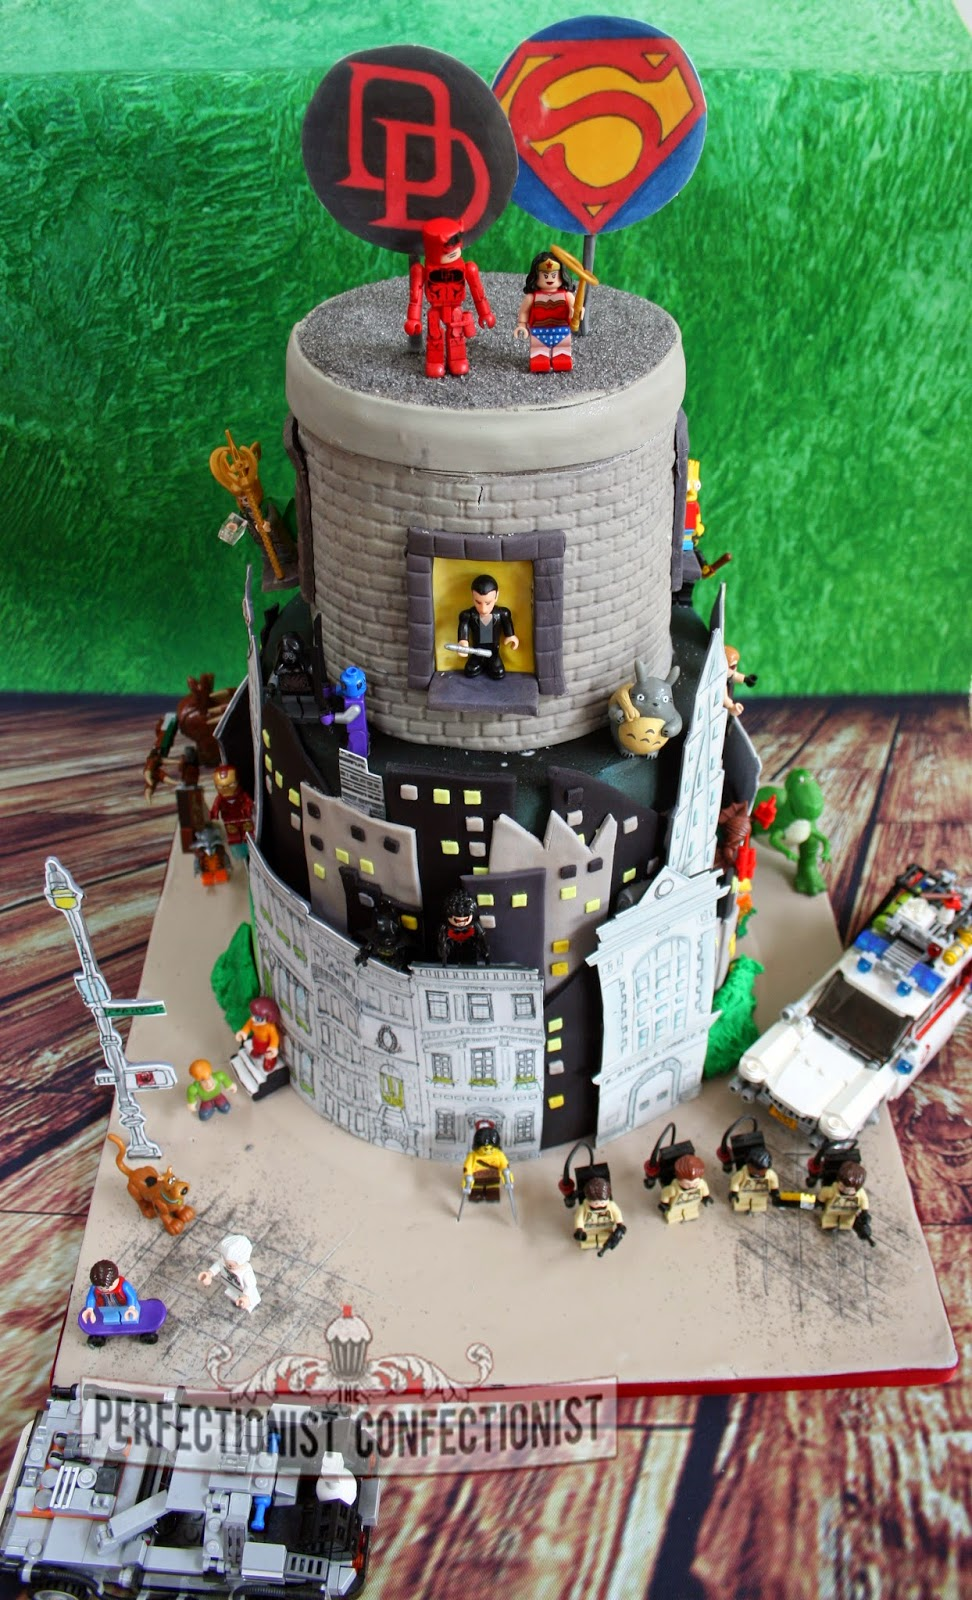 The Perfectionist Confectionist Mark And Emma Comic Book Lego - Comic Book Wedding Cake